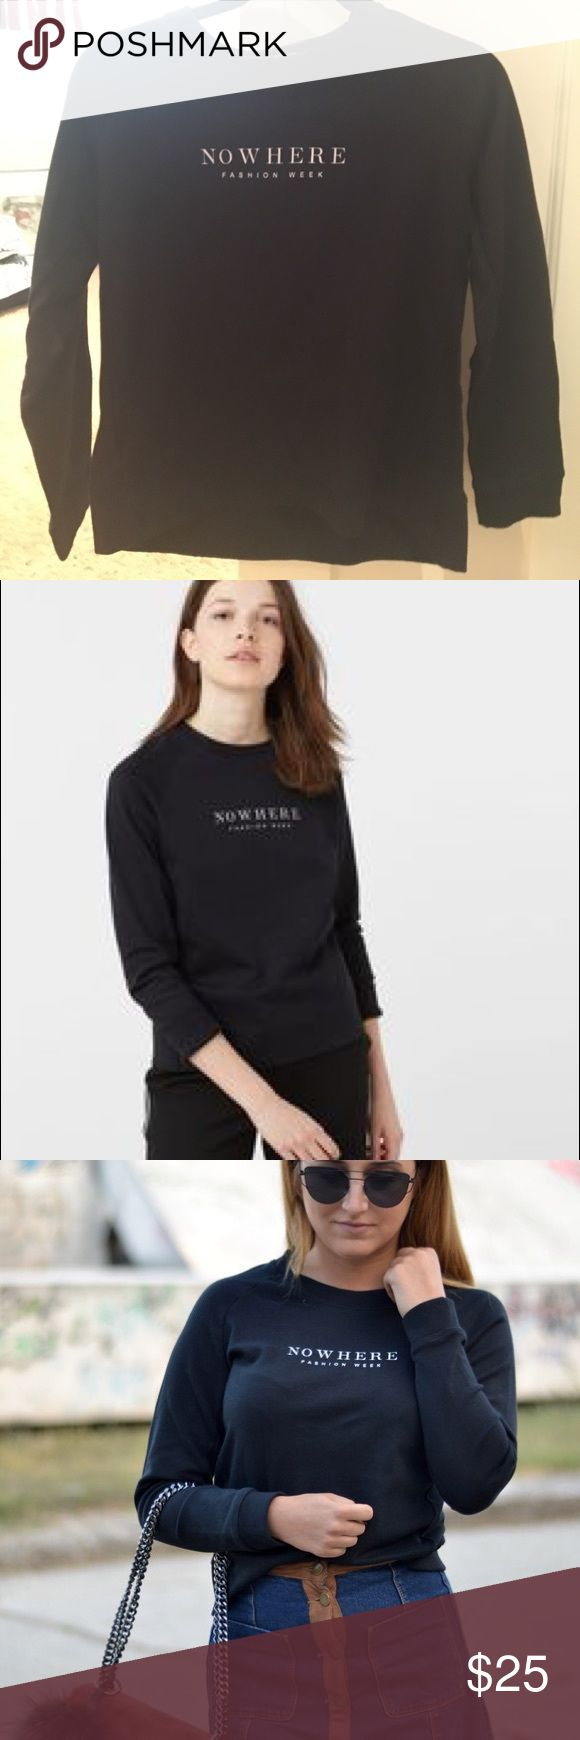 """Mango Clothing """"Nowhere Fashion Week"""" Black Shirt Black crew beck sweatshirt reading """"Nowhere Fashion Week"""" in the center in white. Size small (US), size medium (EU). Only worn once and in perfect condition. Mango Sweaters Crew & Scoop Necks"""